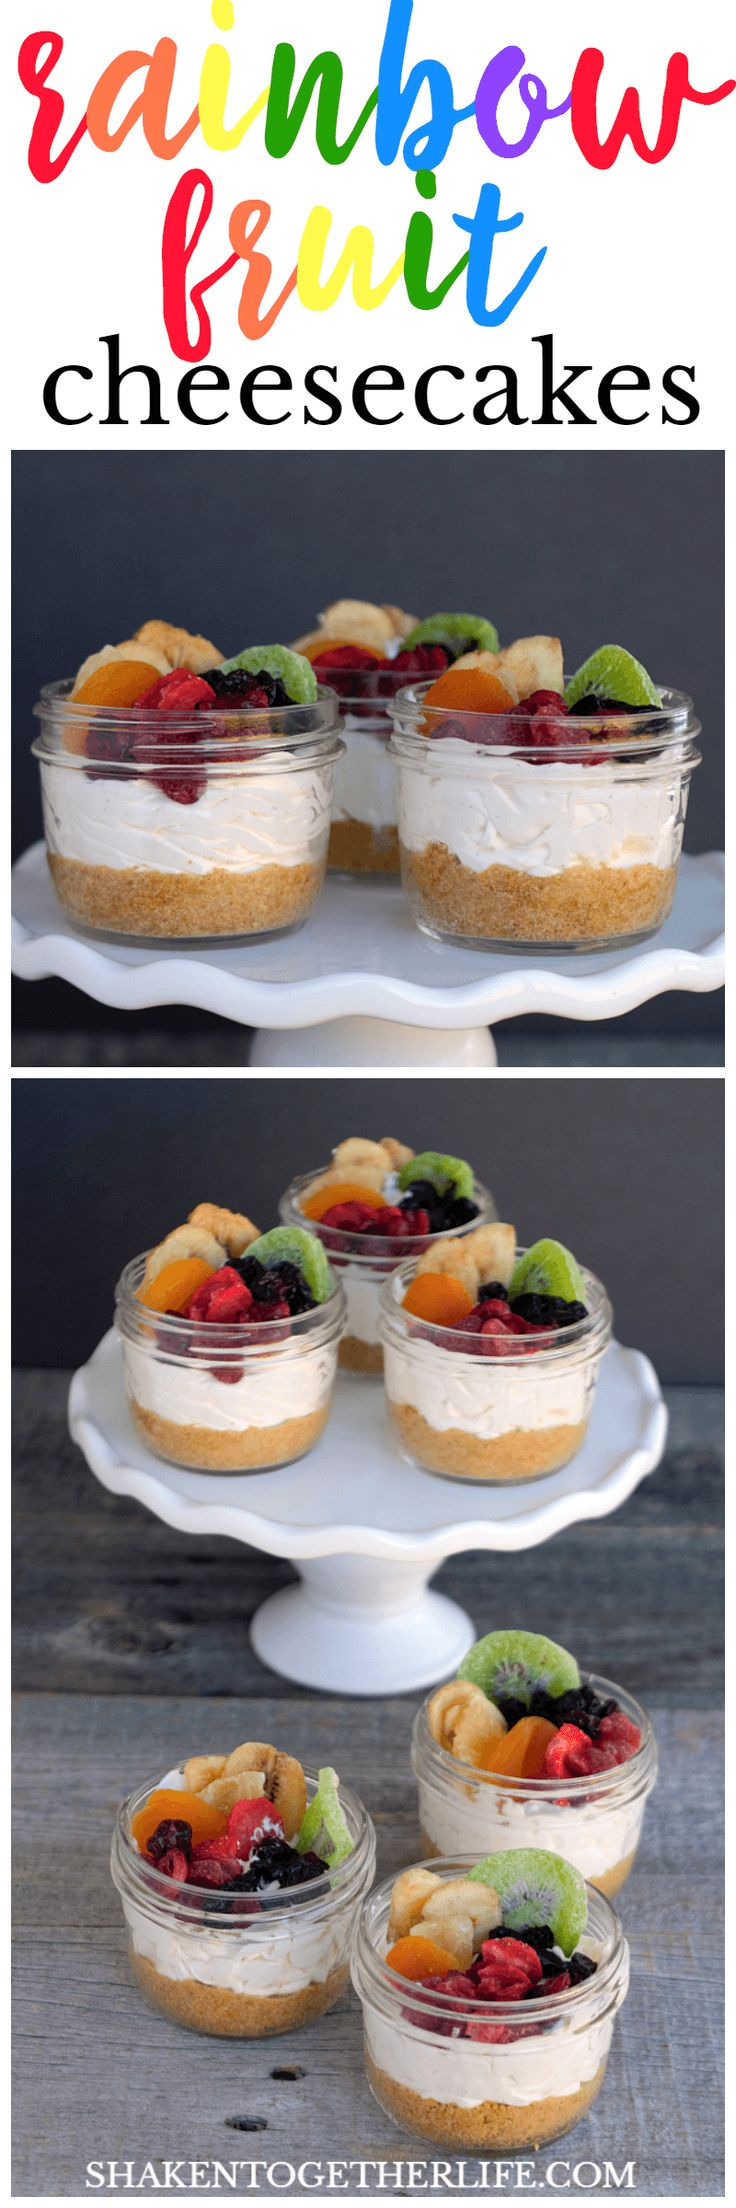 Rainbow Fruit Cheesecakes in a Jar - this is my favorite no bake cheesecake recipe with a homemade graham cracker crust and topped with gorgeous rainbow fruit!